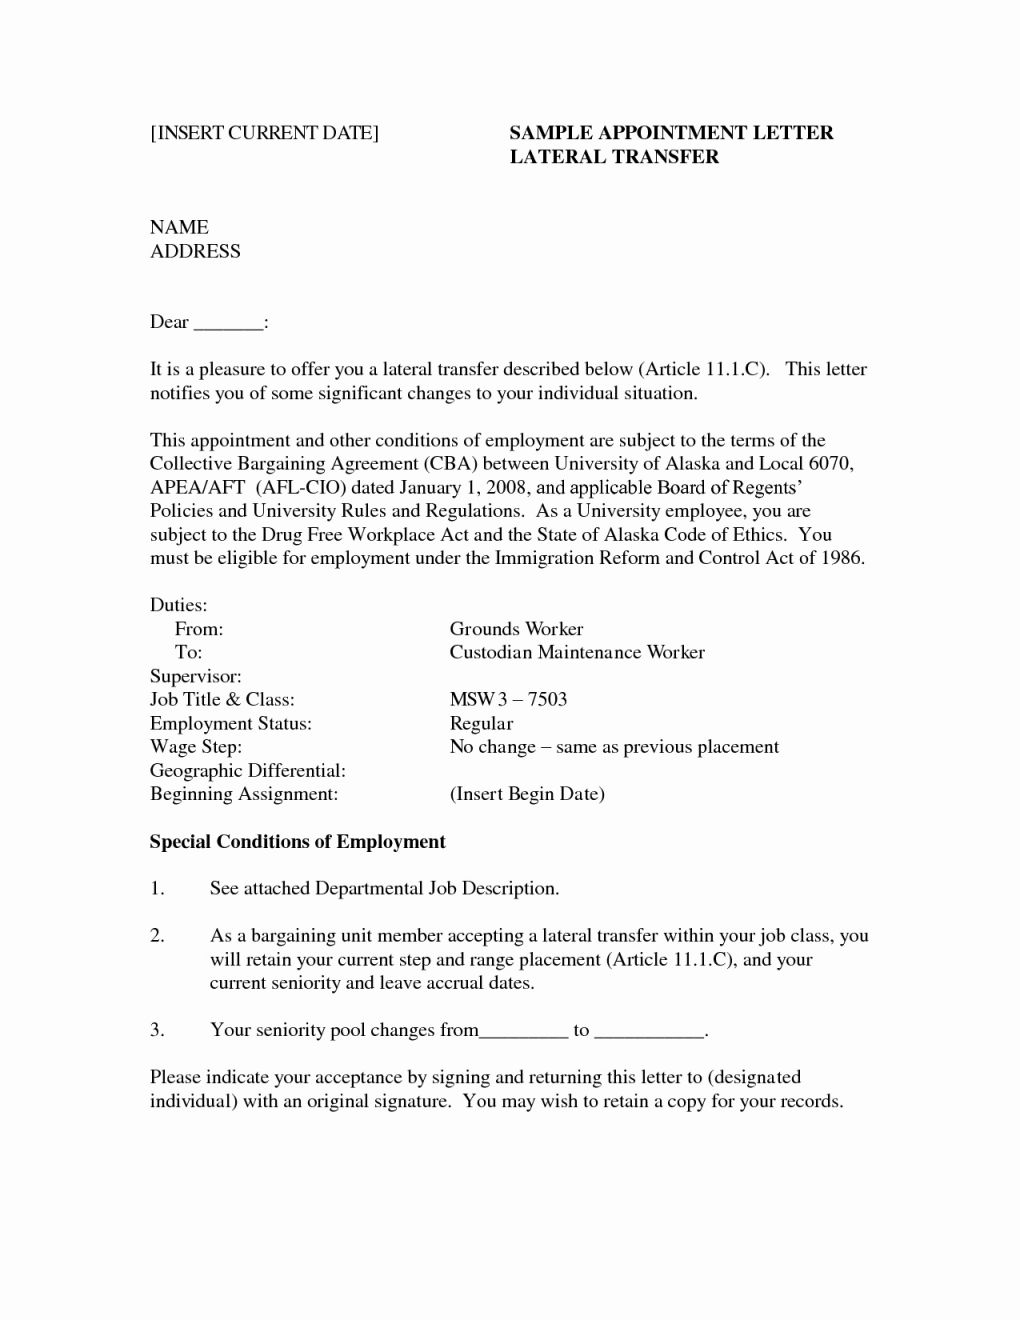 Survey Cover Letter Template - Best Survey Cover Letter Sample Fc64 – Documentaries for Change